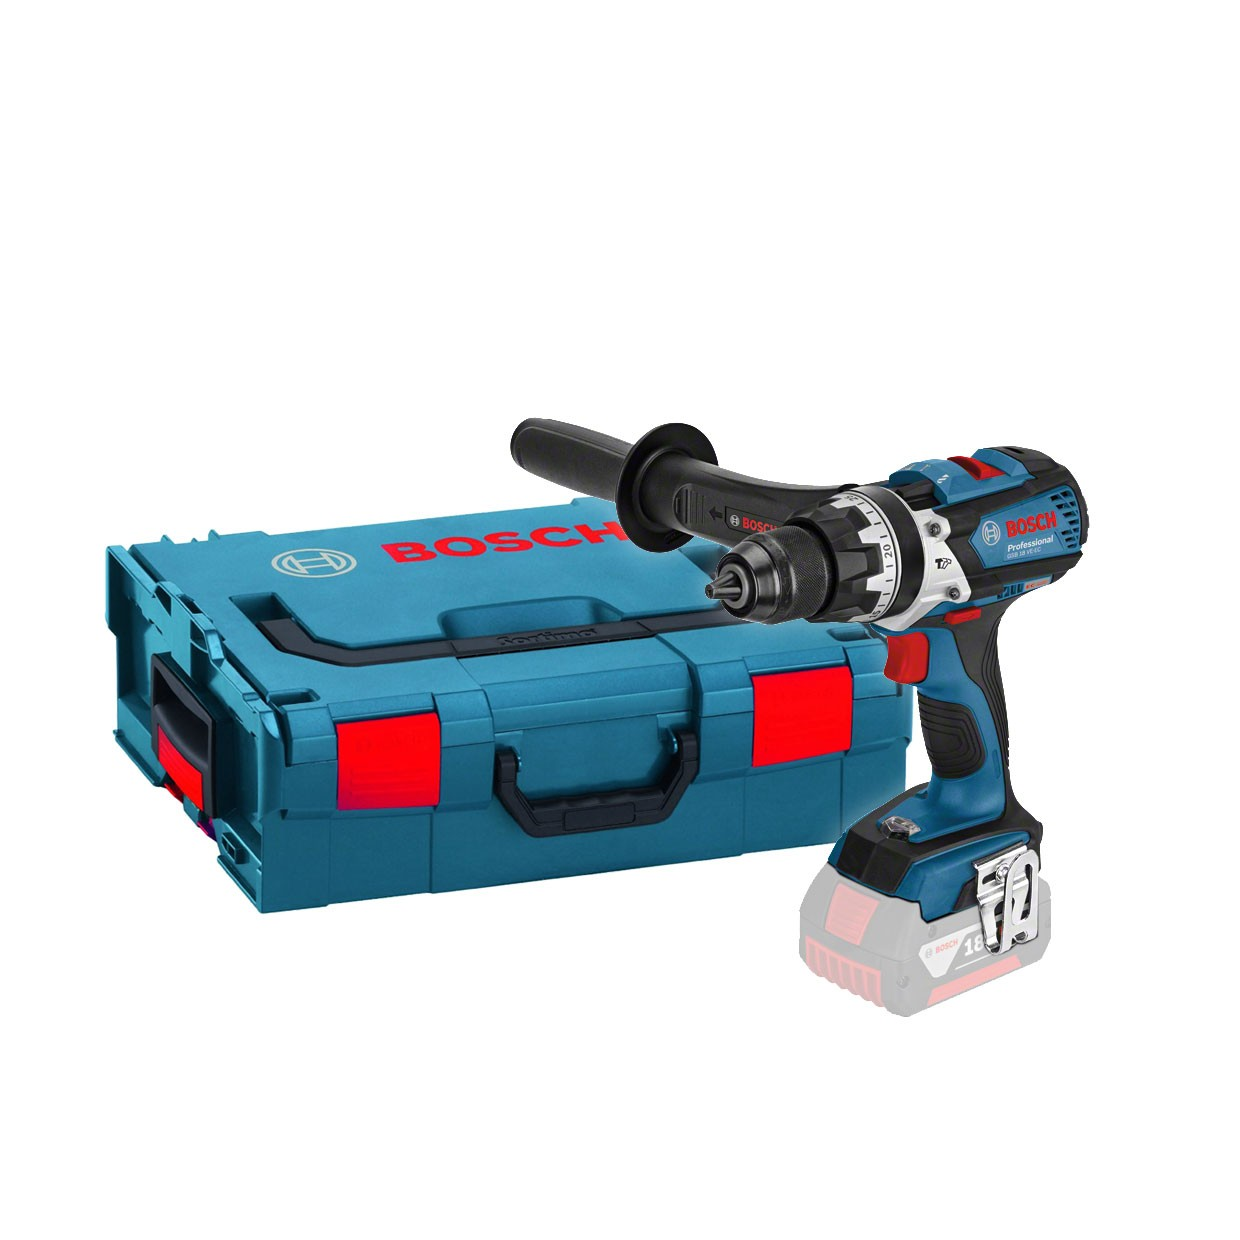 Bosch GSB 18 VE-EC RS Brushless Combi Drill Body Only in L-Boxx 06019F1300